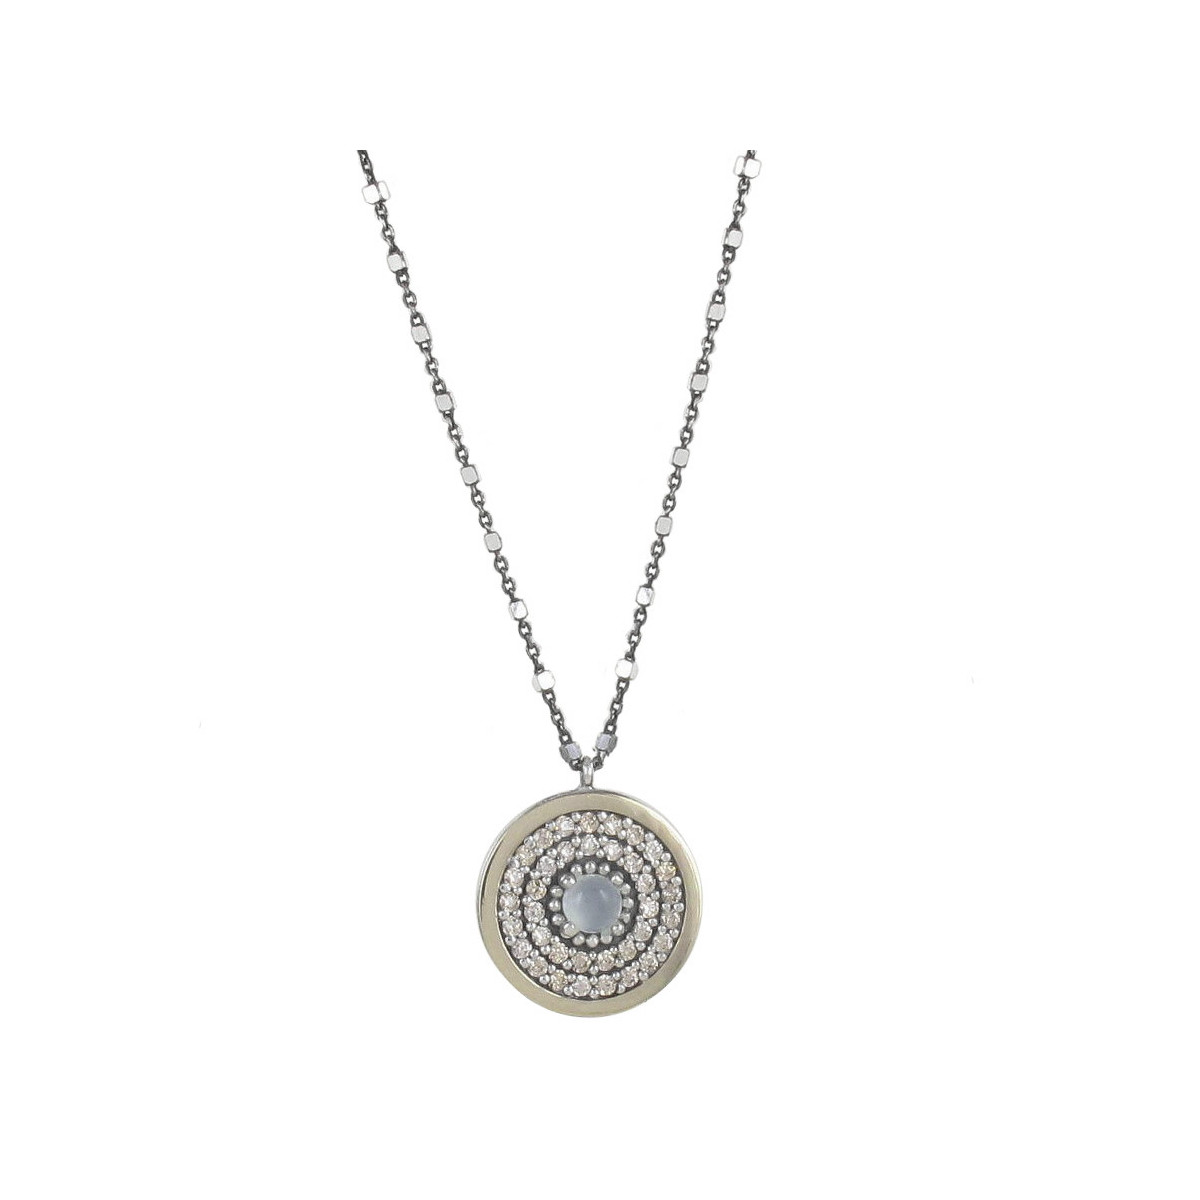 NECKLACE WITH SILVER AND GOLD PENDANT 1,6 CM